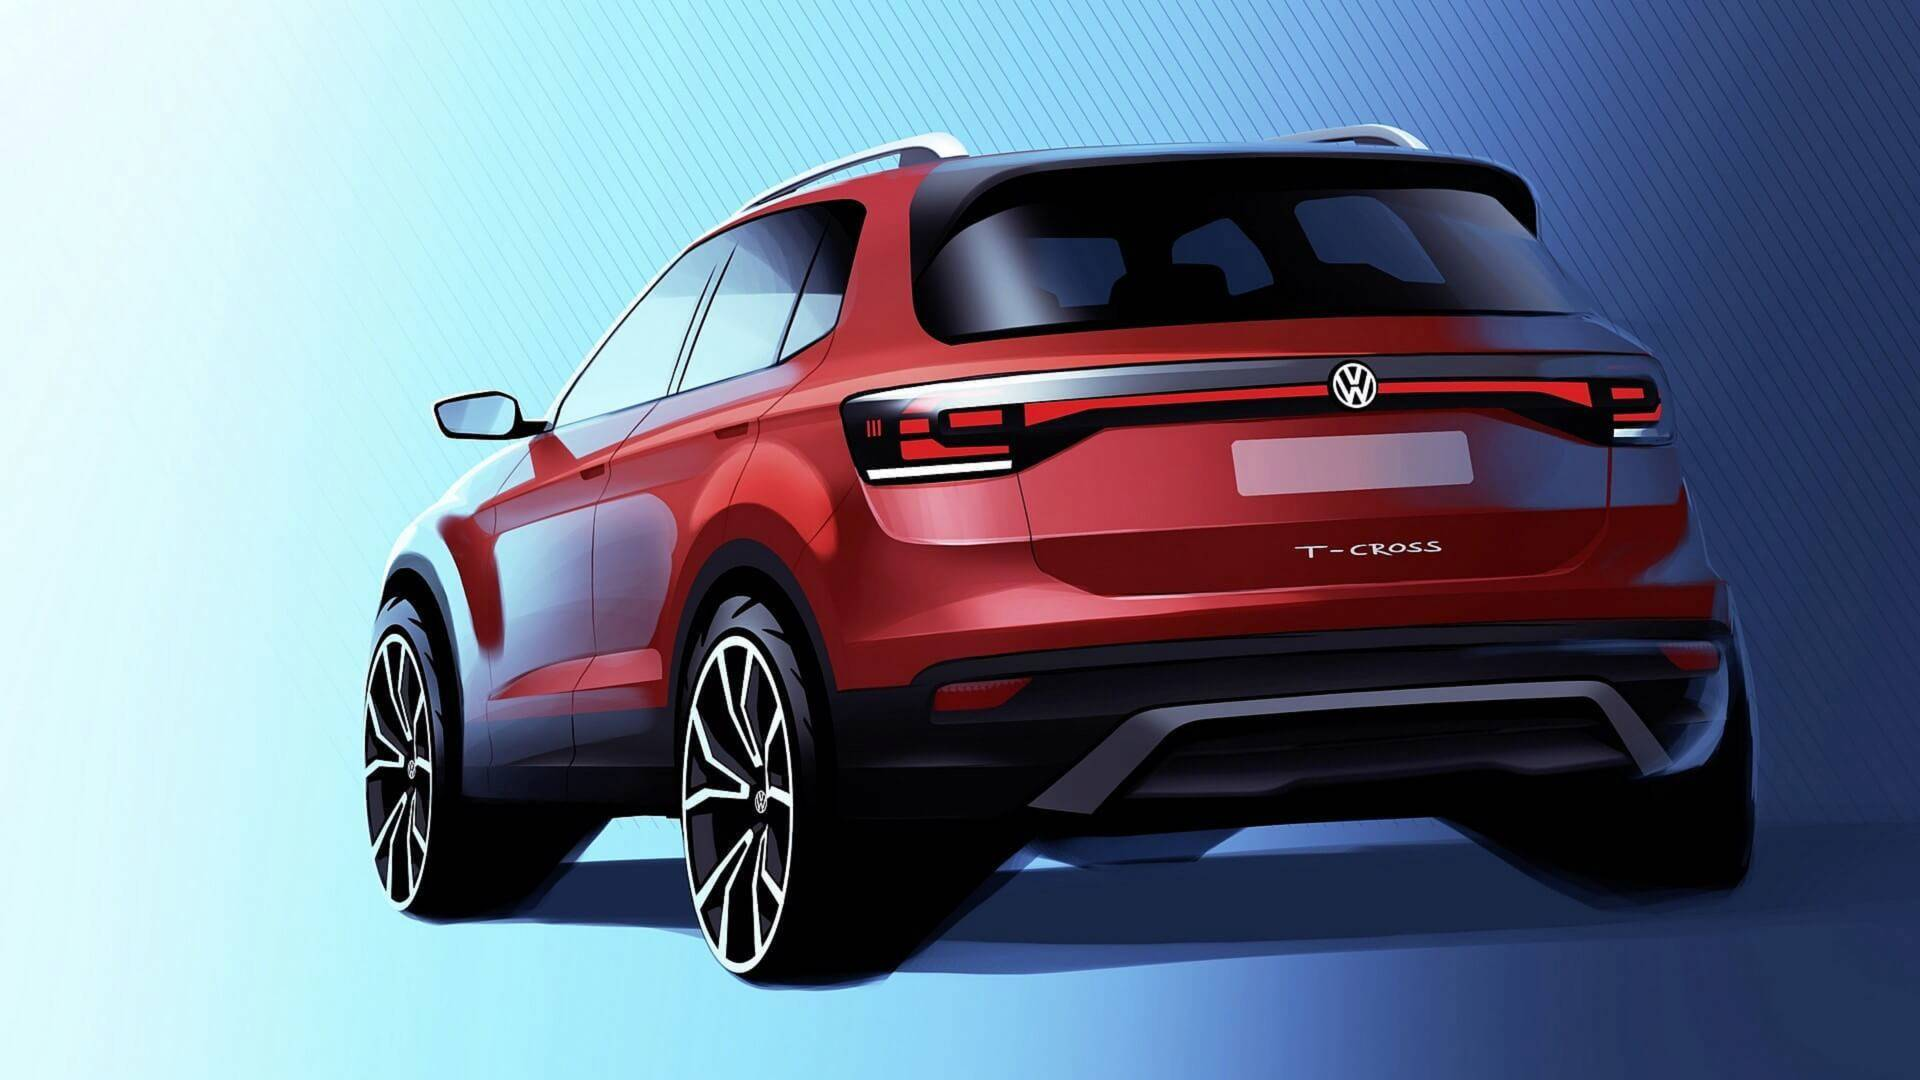 2019-vw-t-cross-teaser